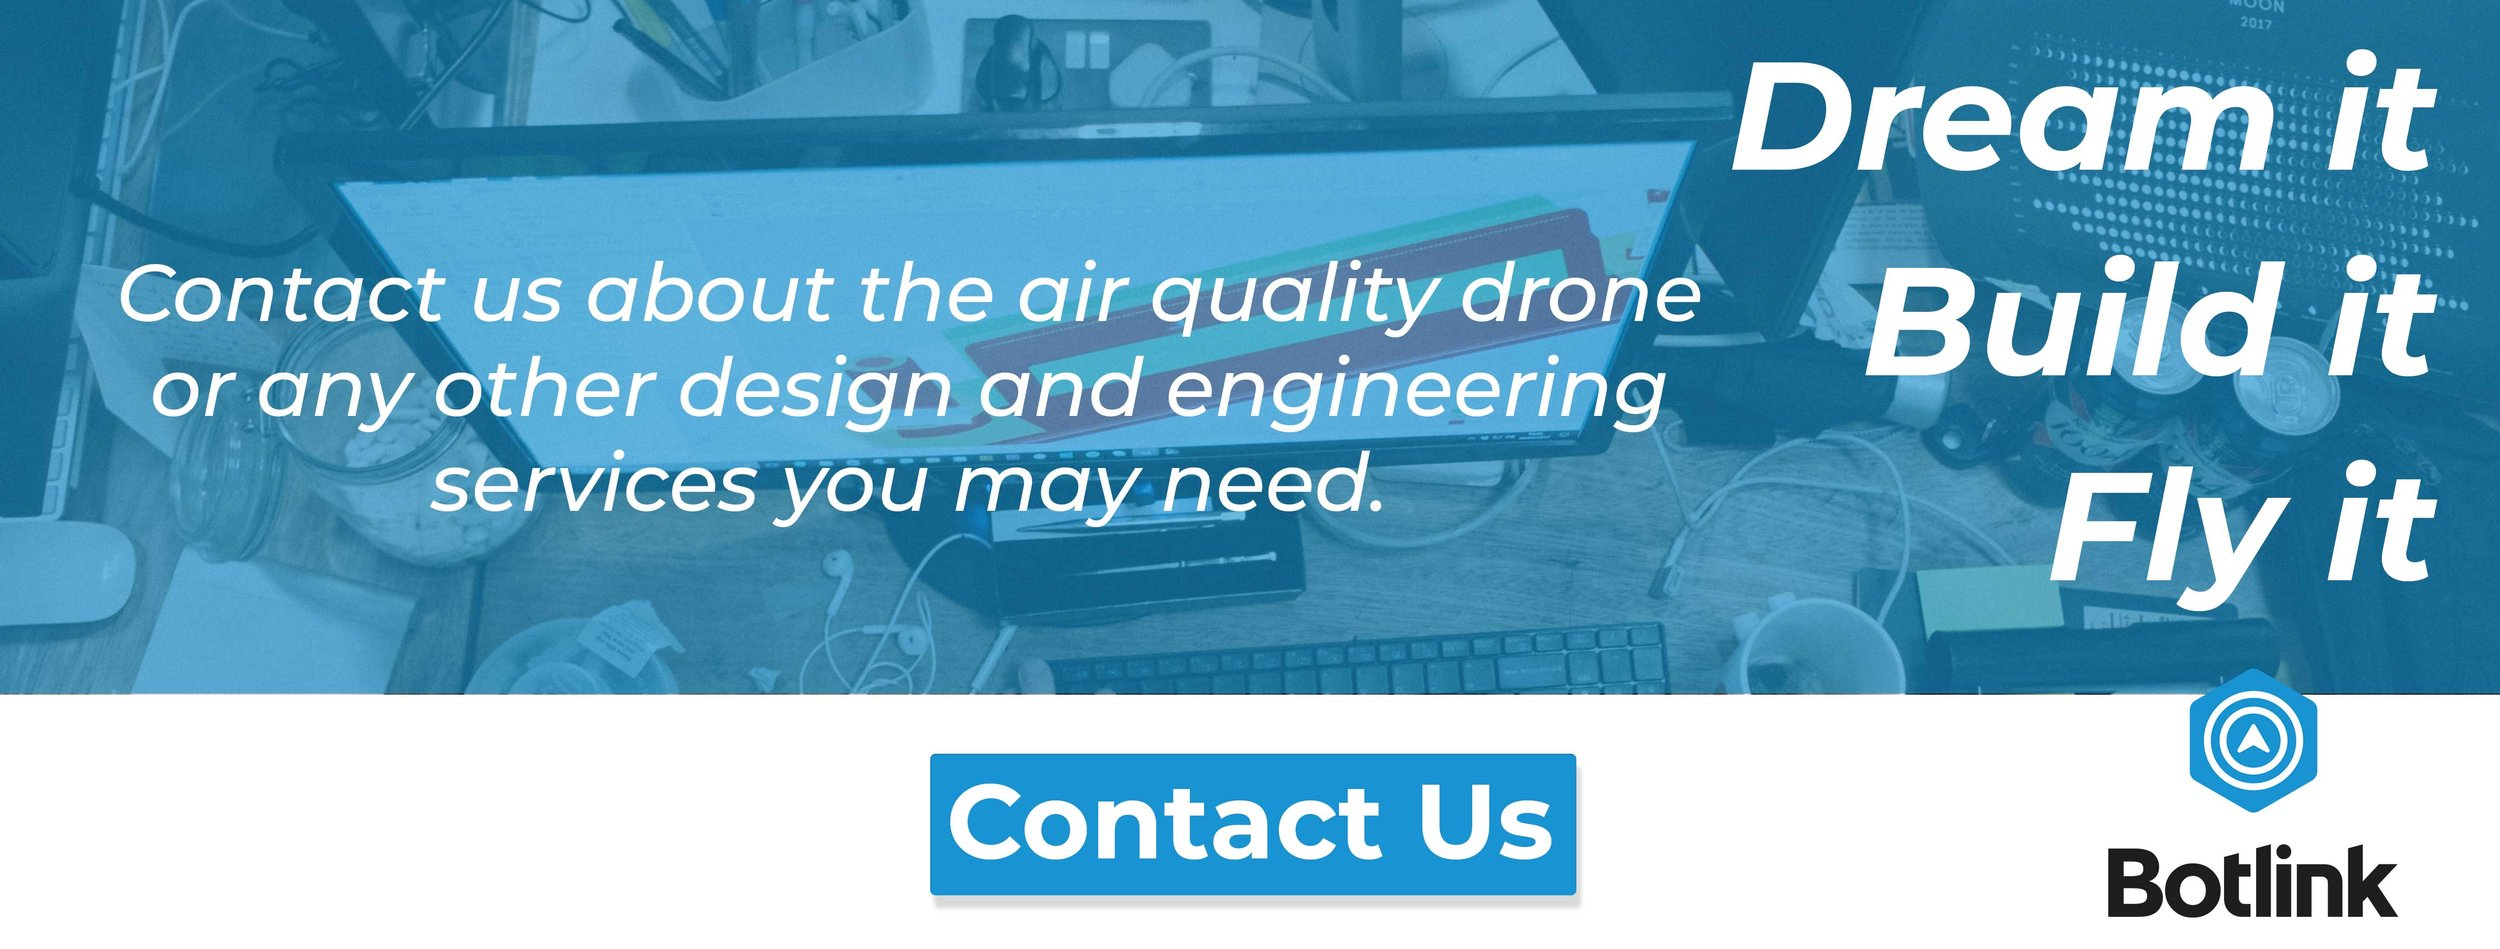 contact-us-air-quality-drone.jpg